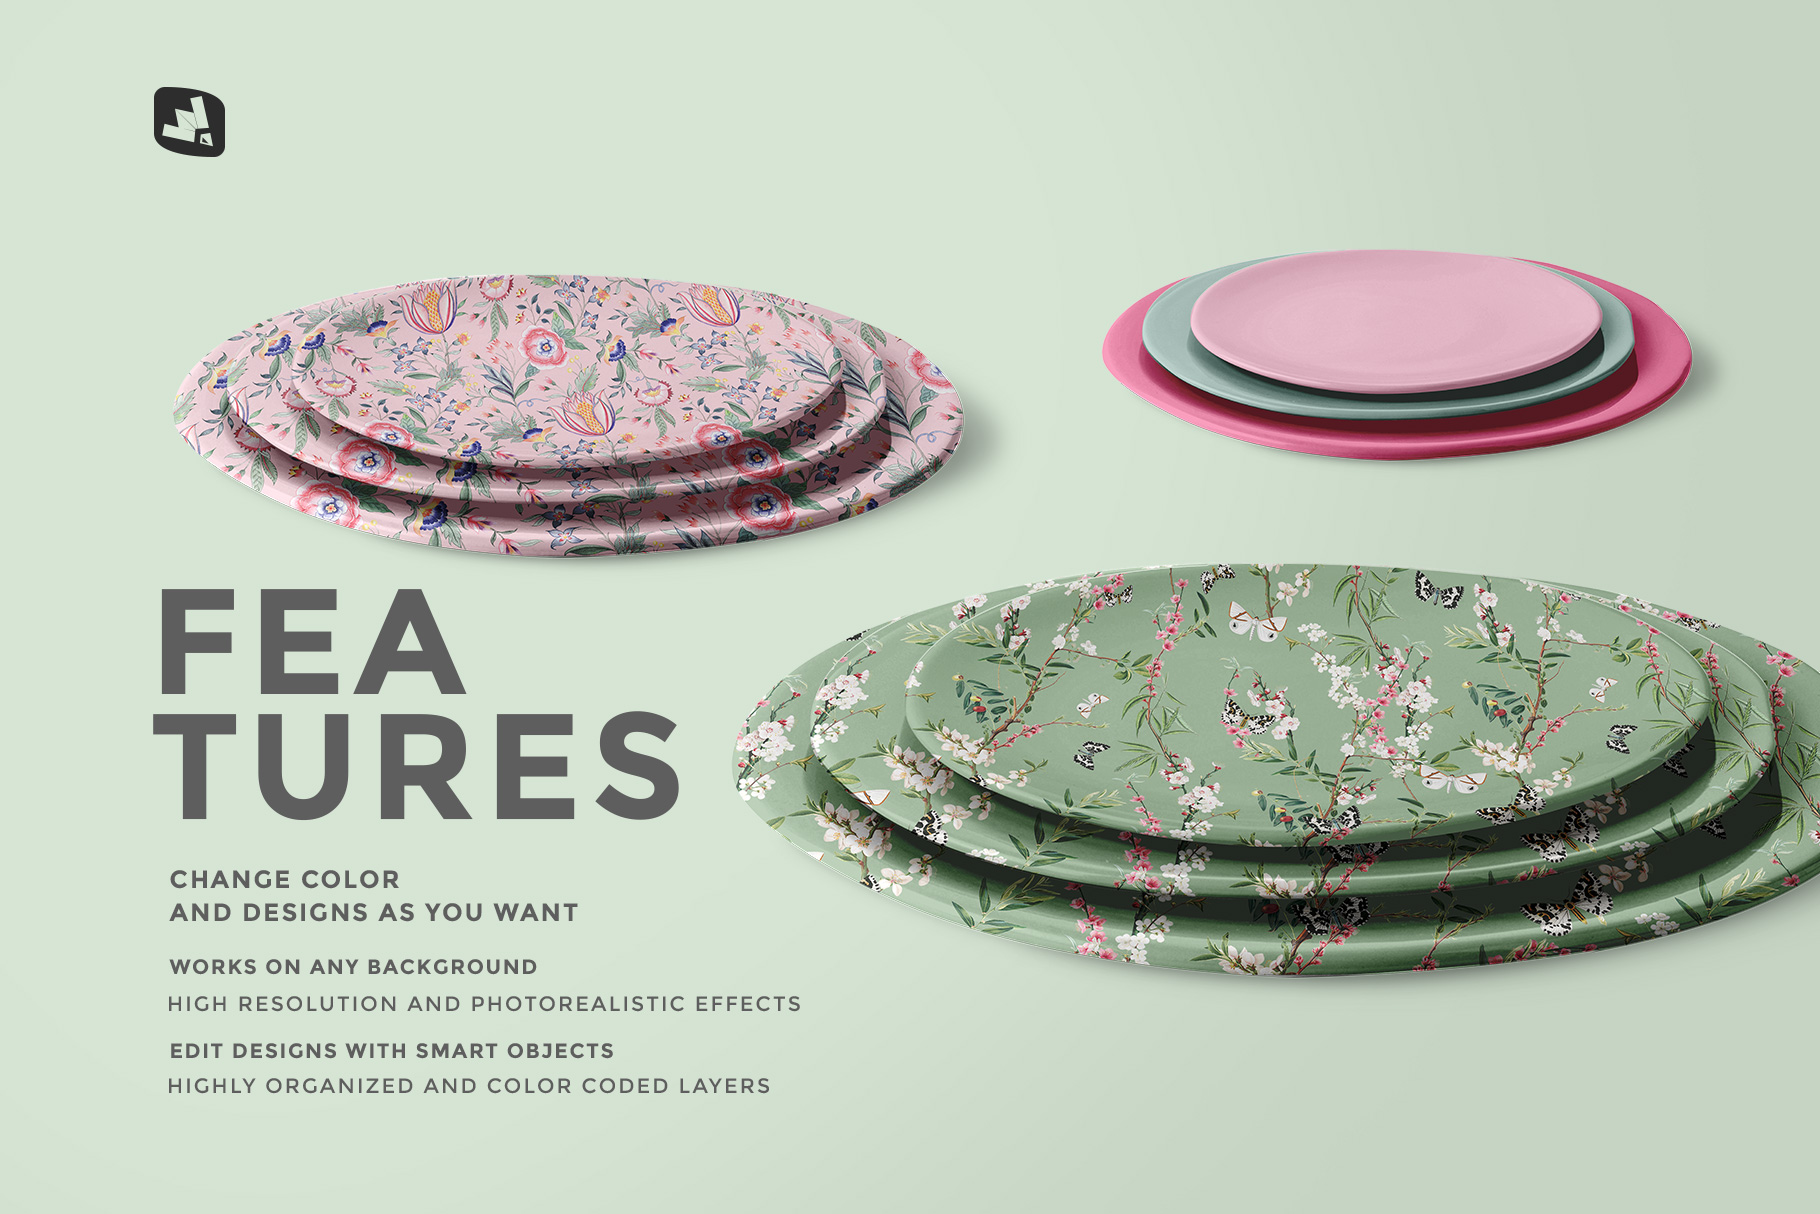 features of the stacked ceramic plate mockup